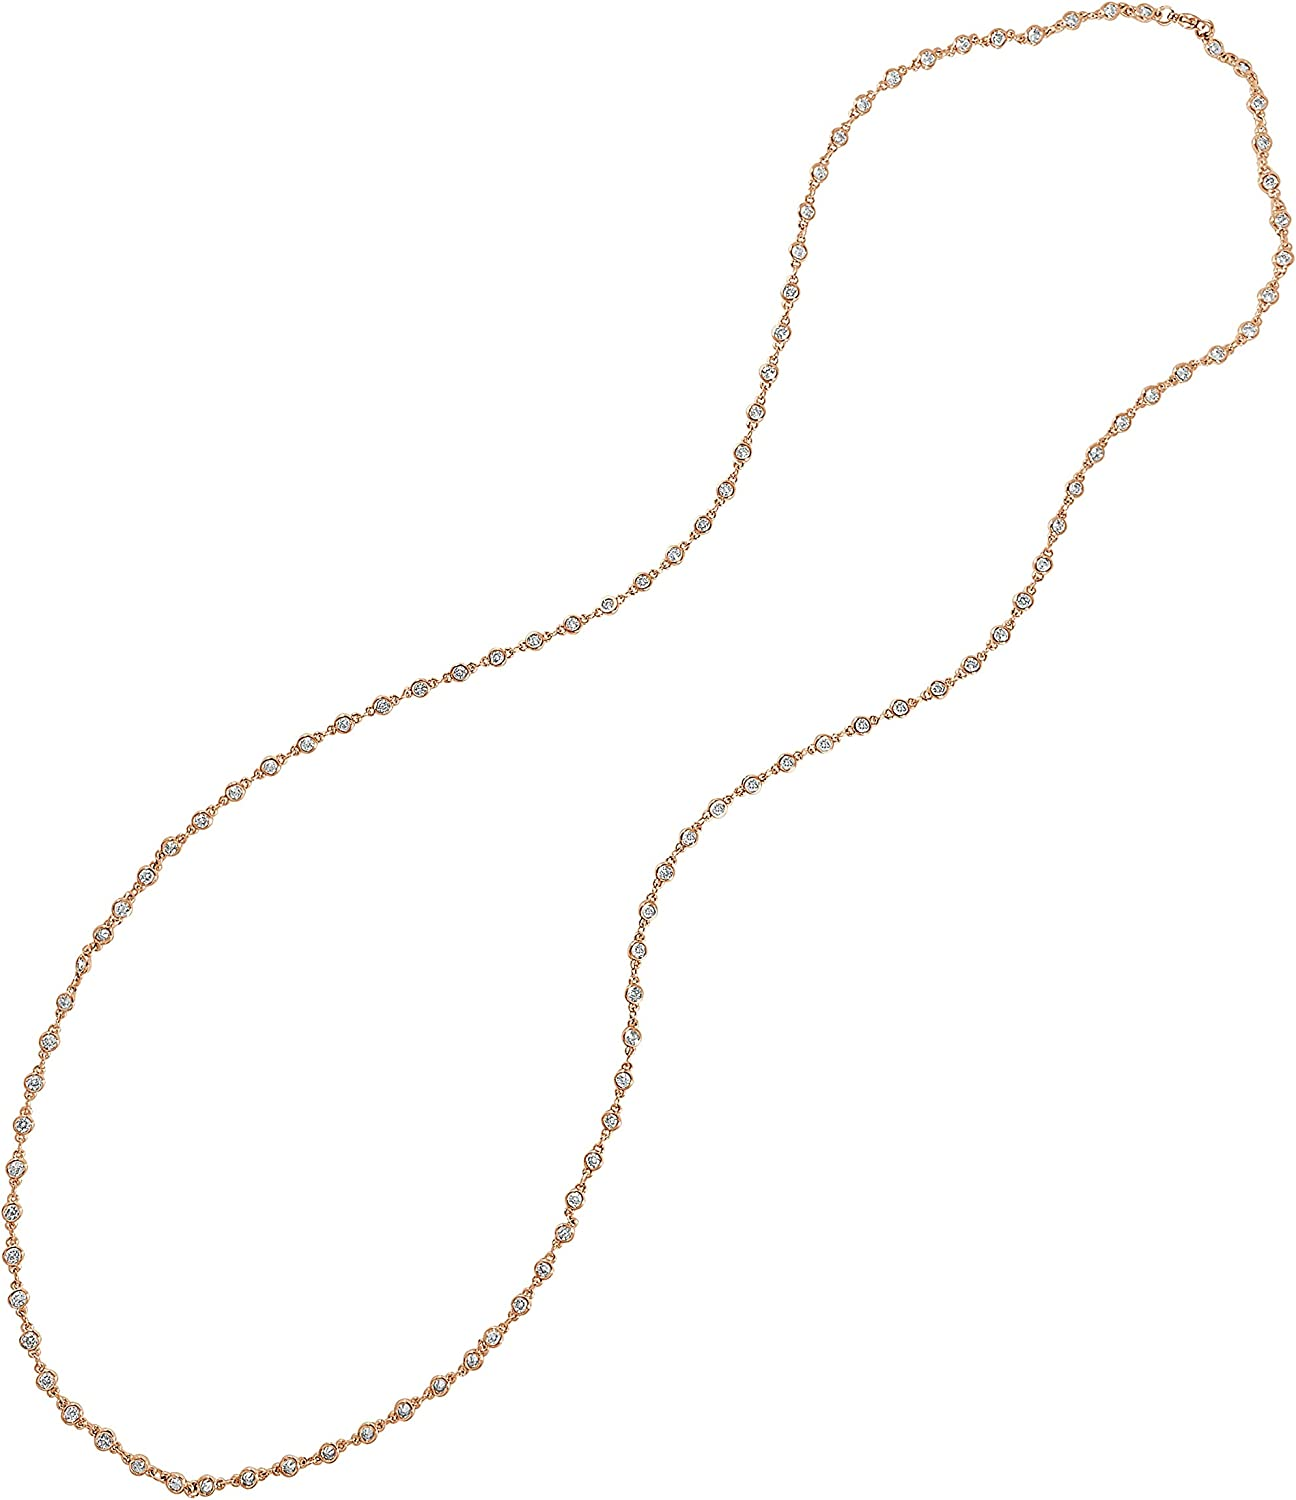 ARIA Jewelry- 3mm Gold Plated Long Necklace Chain with CZ for Women- 36